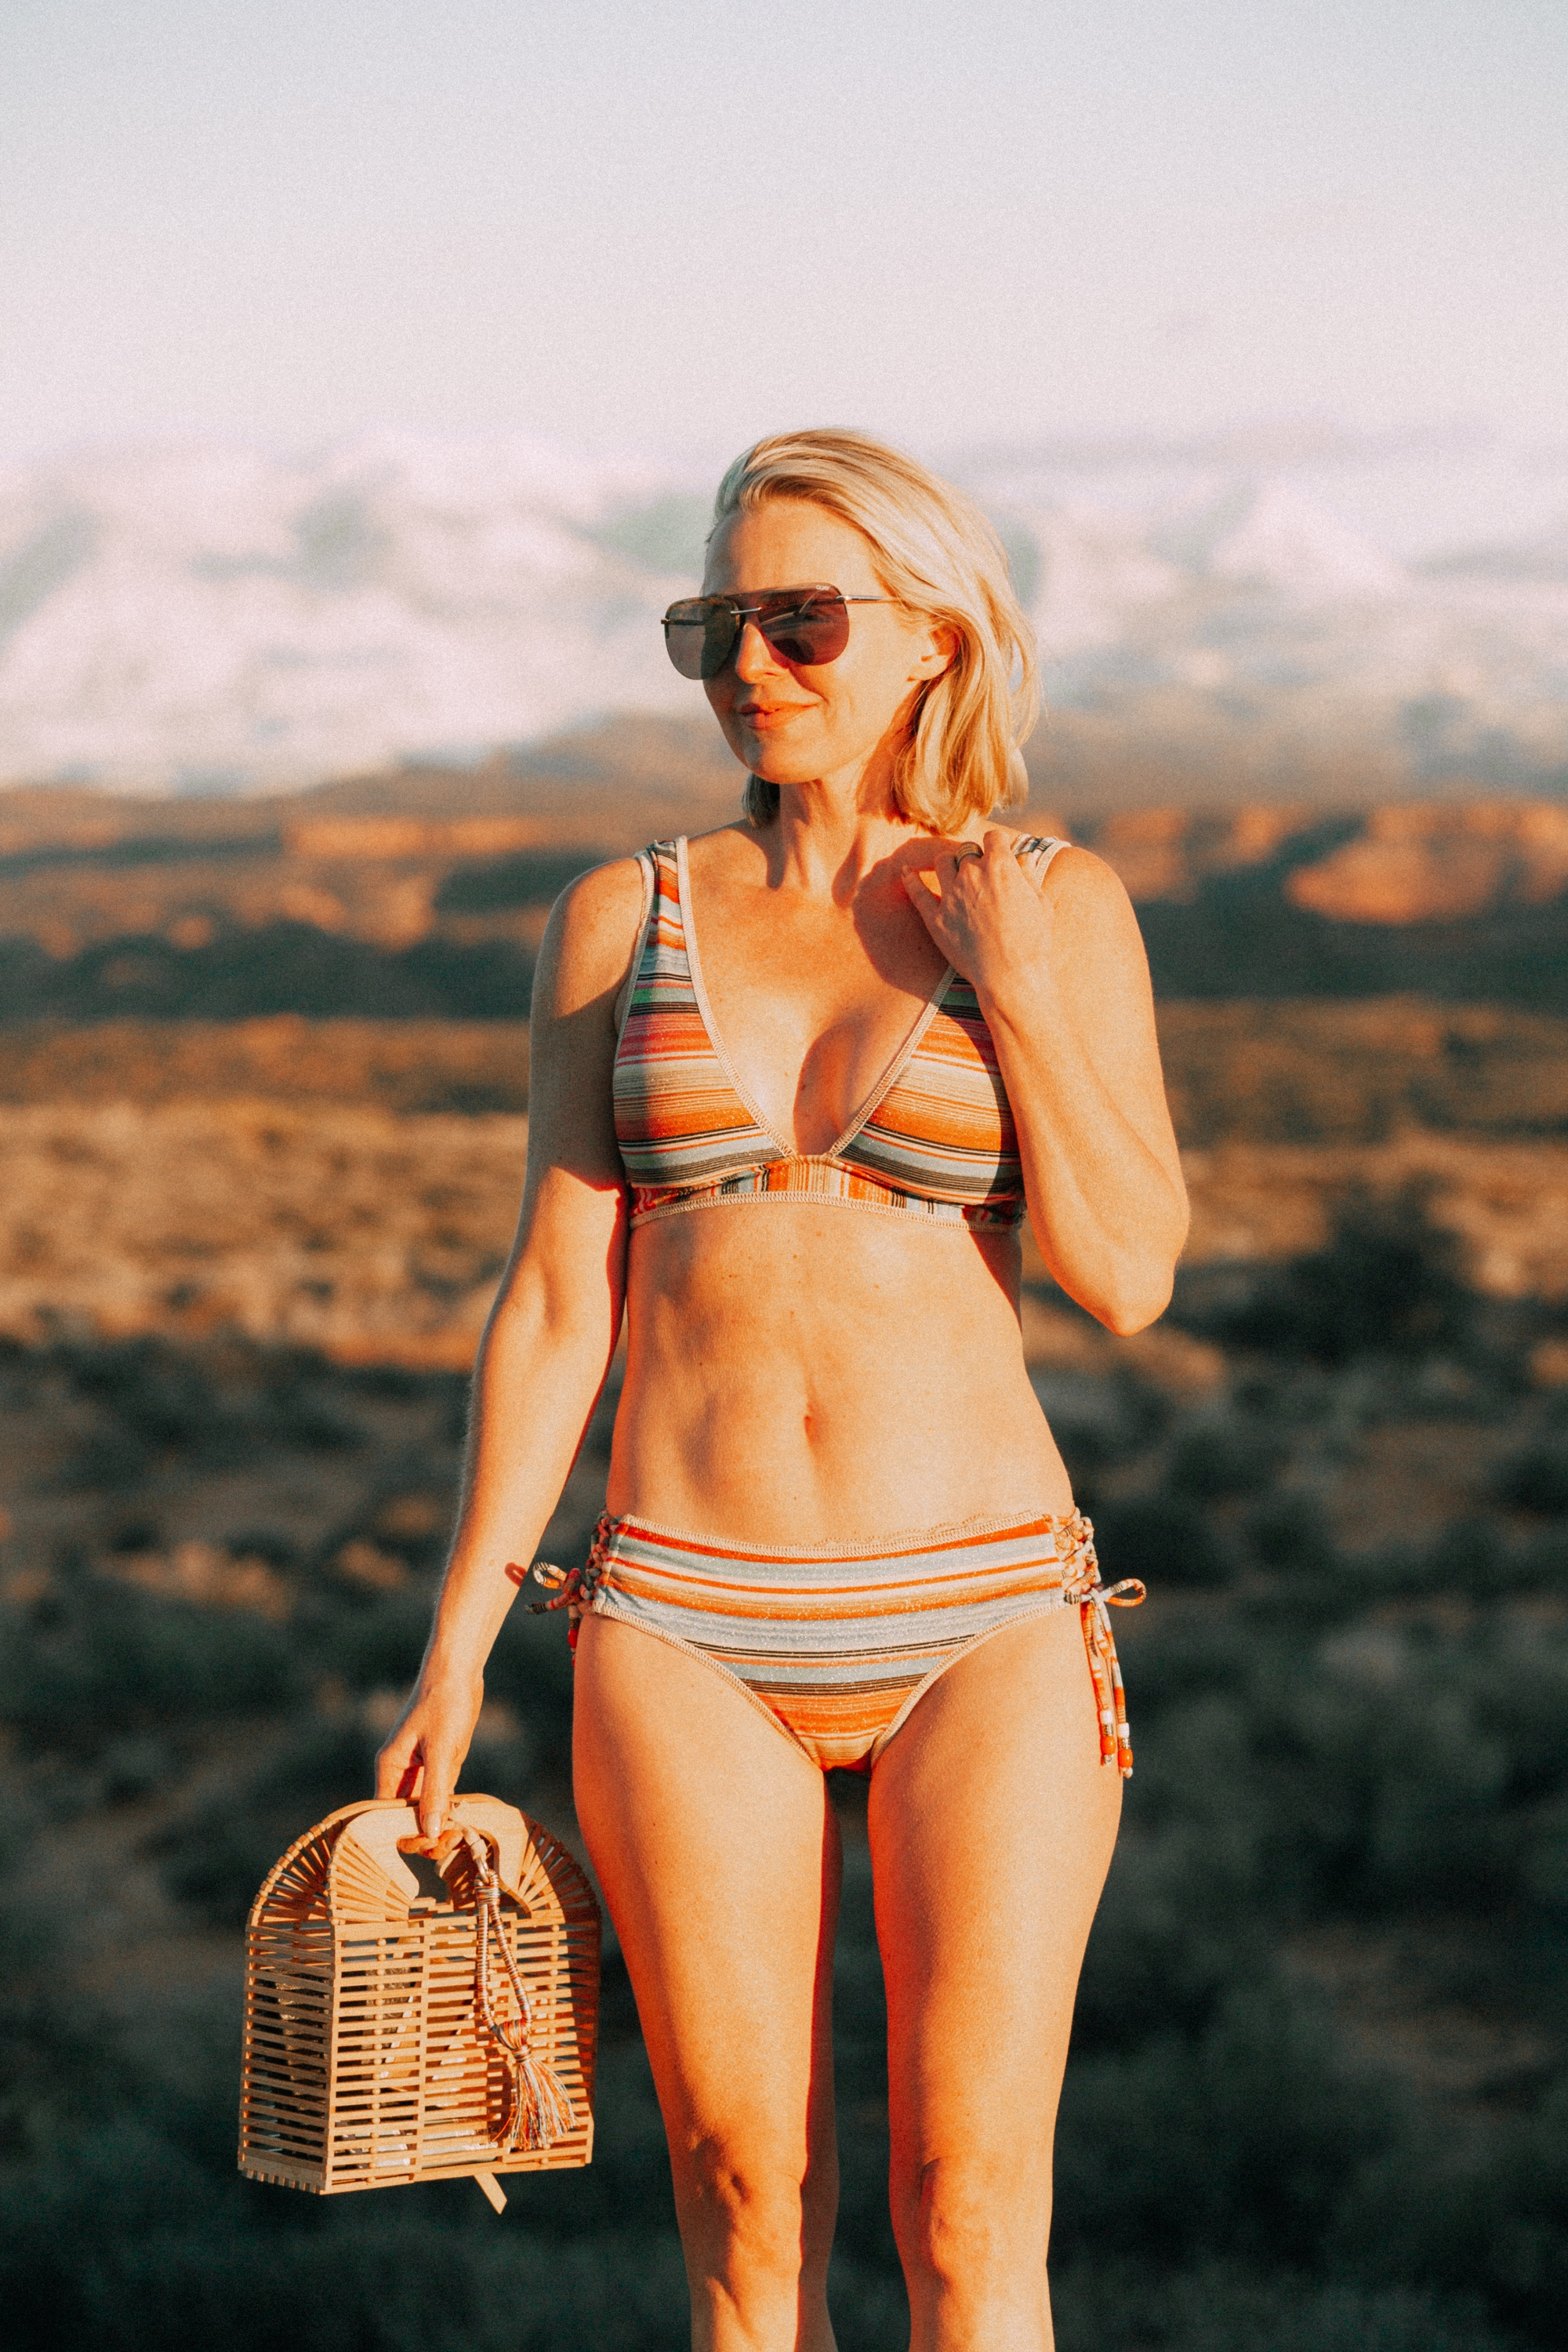 full coverage metallic stripe bikini for women over age 40 by becca from everything but water with vince camuto bamboo cage clutch